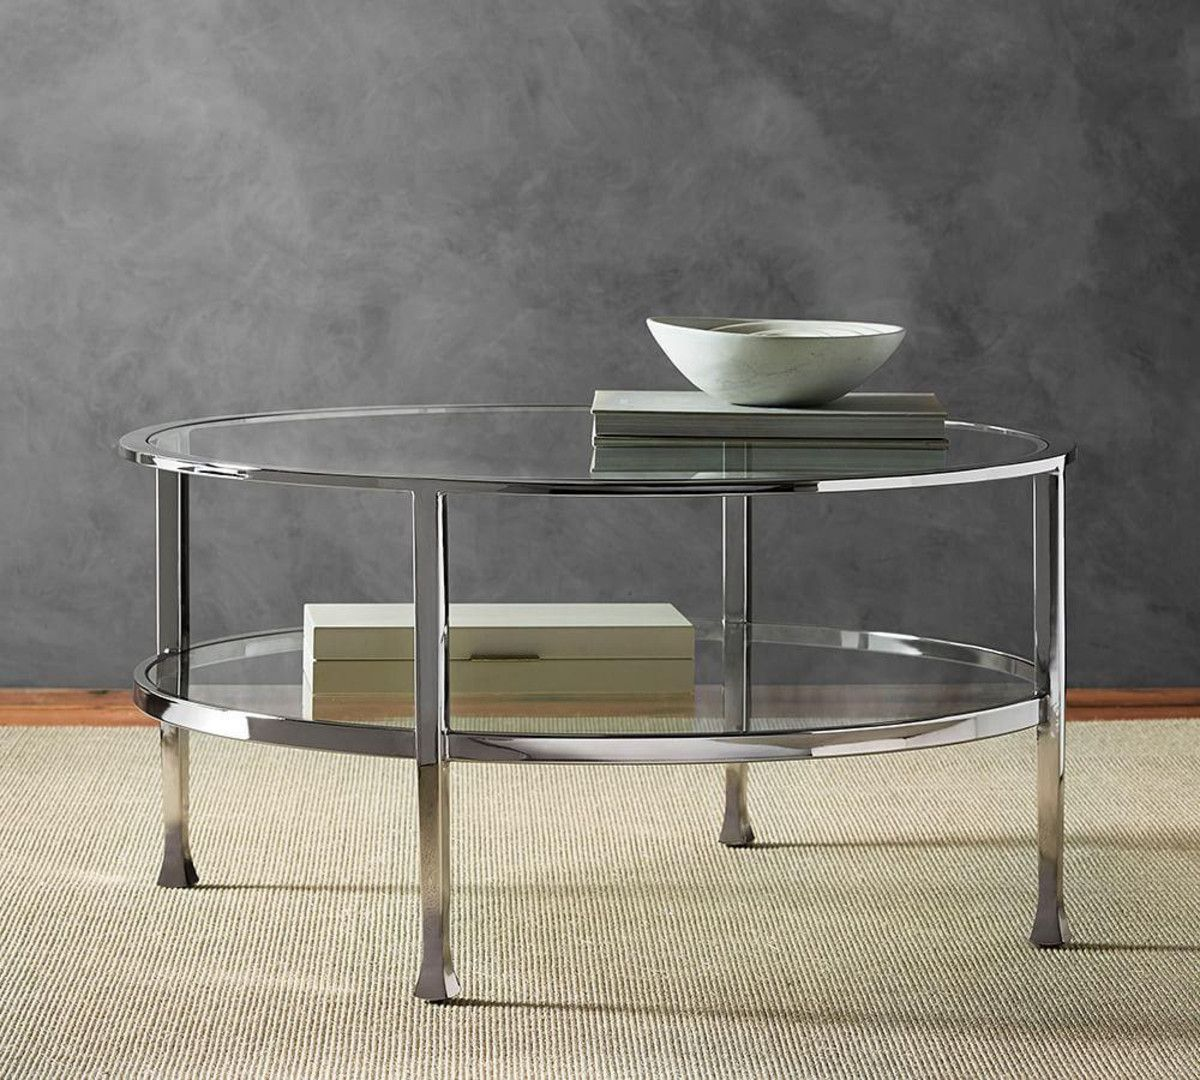 8dcf7423509f Tanner Round Coffee Table - Polished Nickel Finish